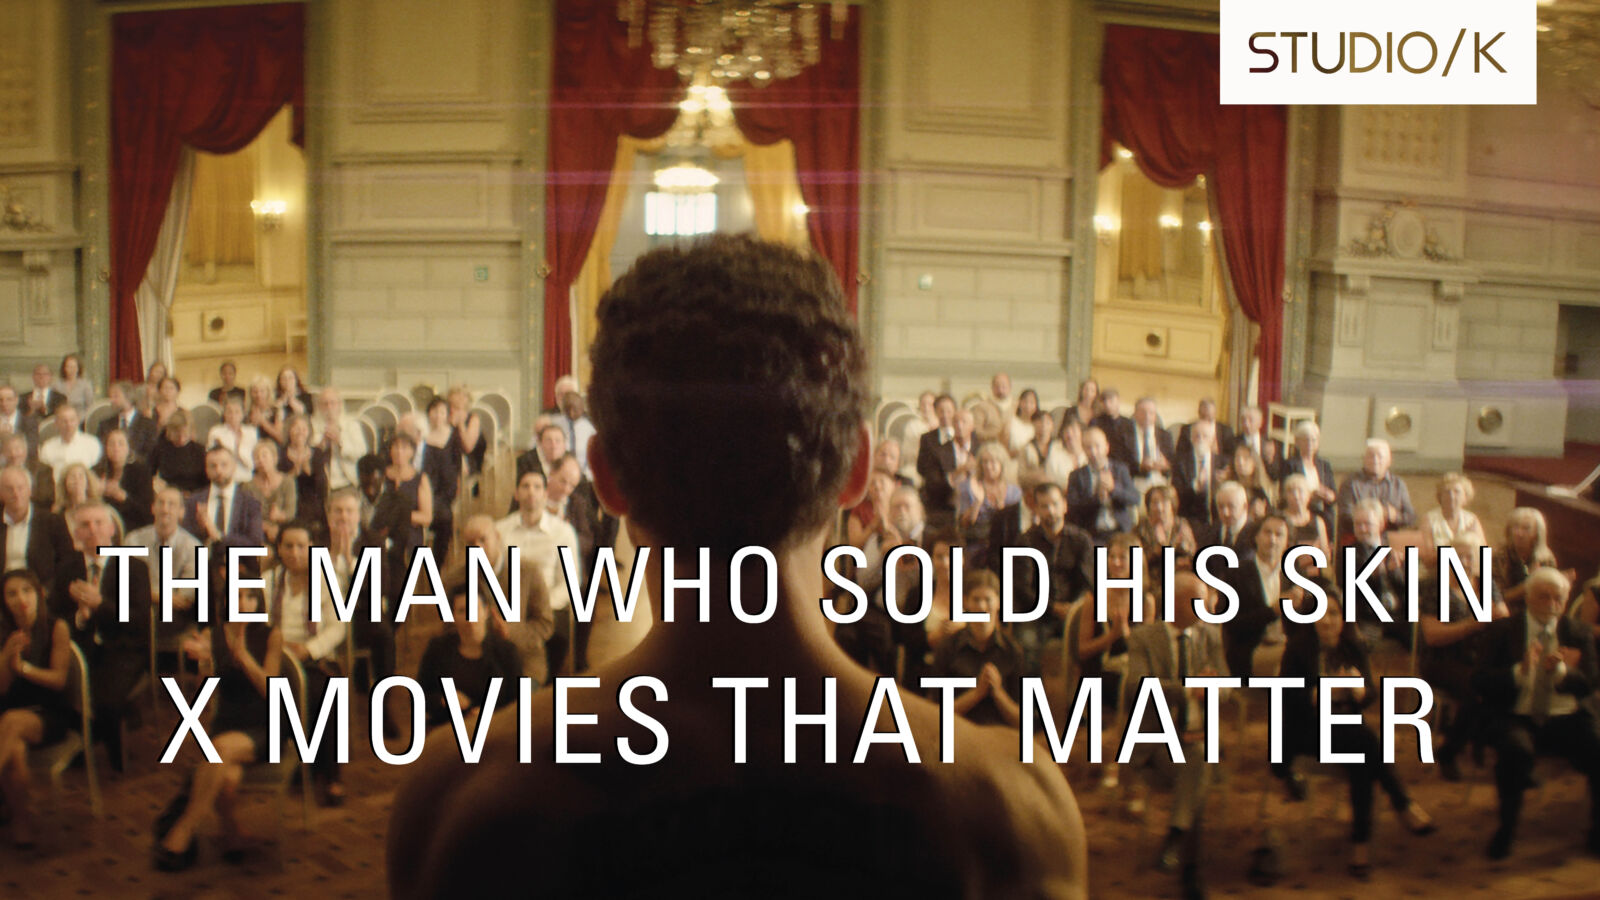 The Man Who Sold His Skin x Movies that Matter